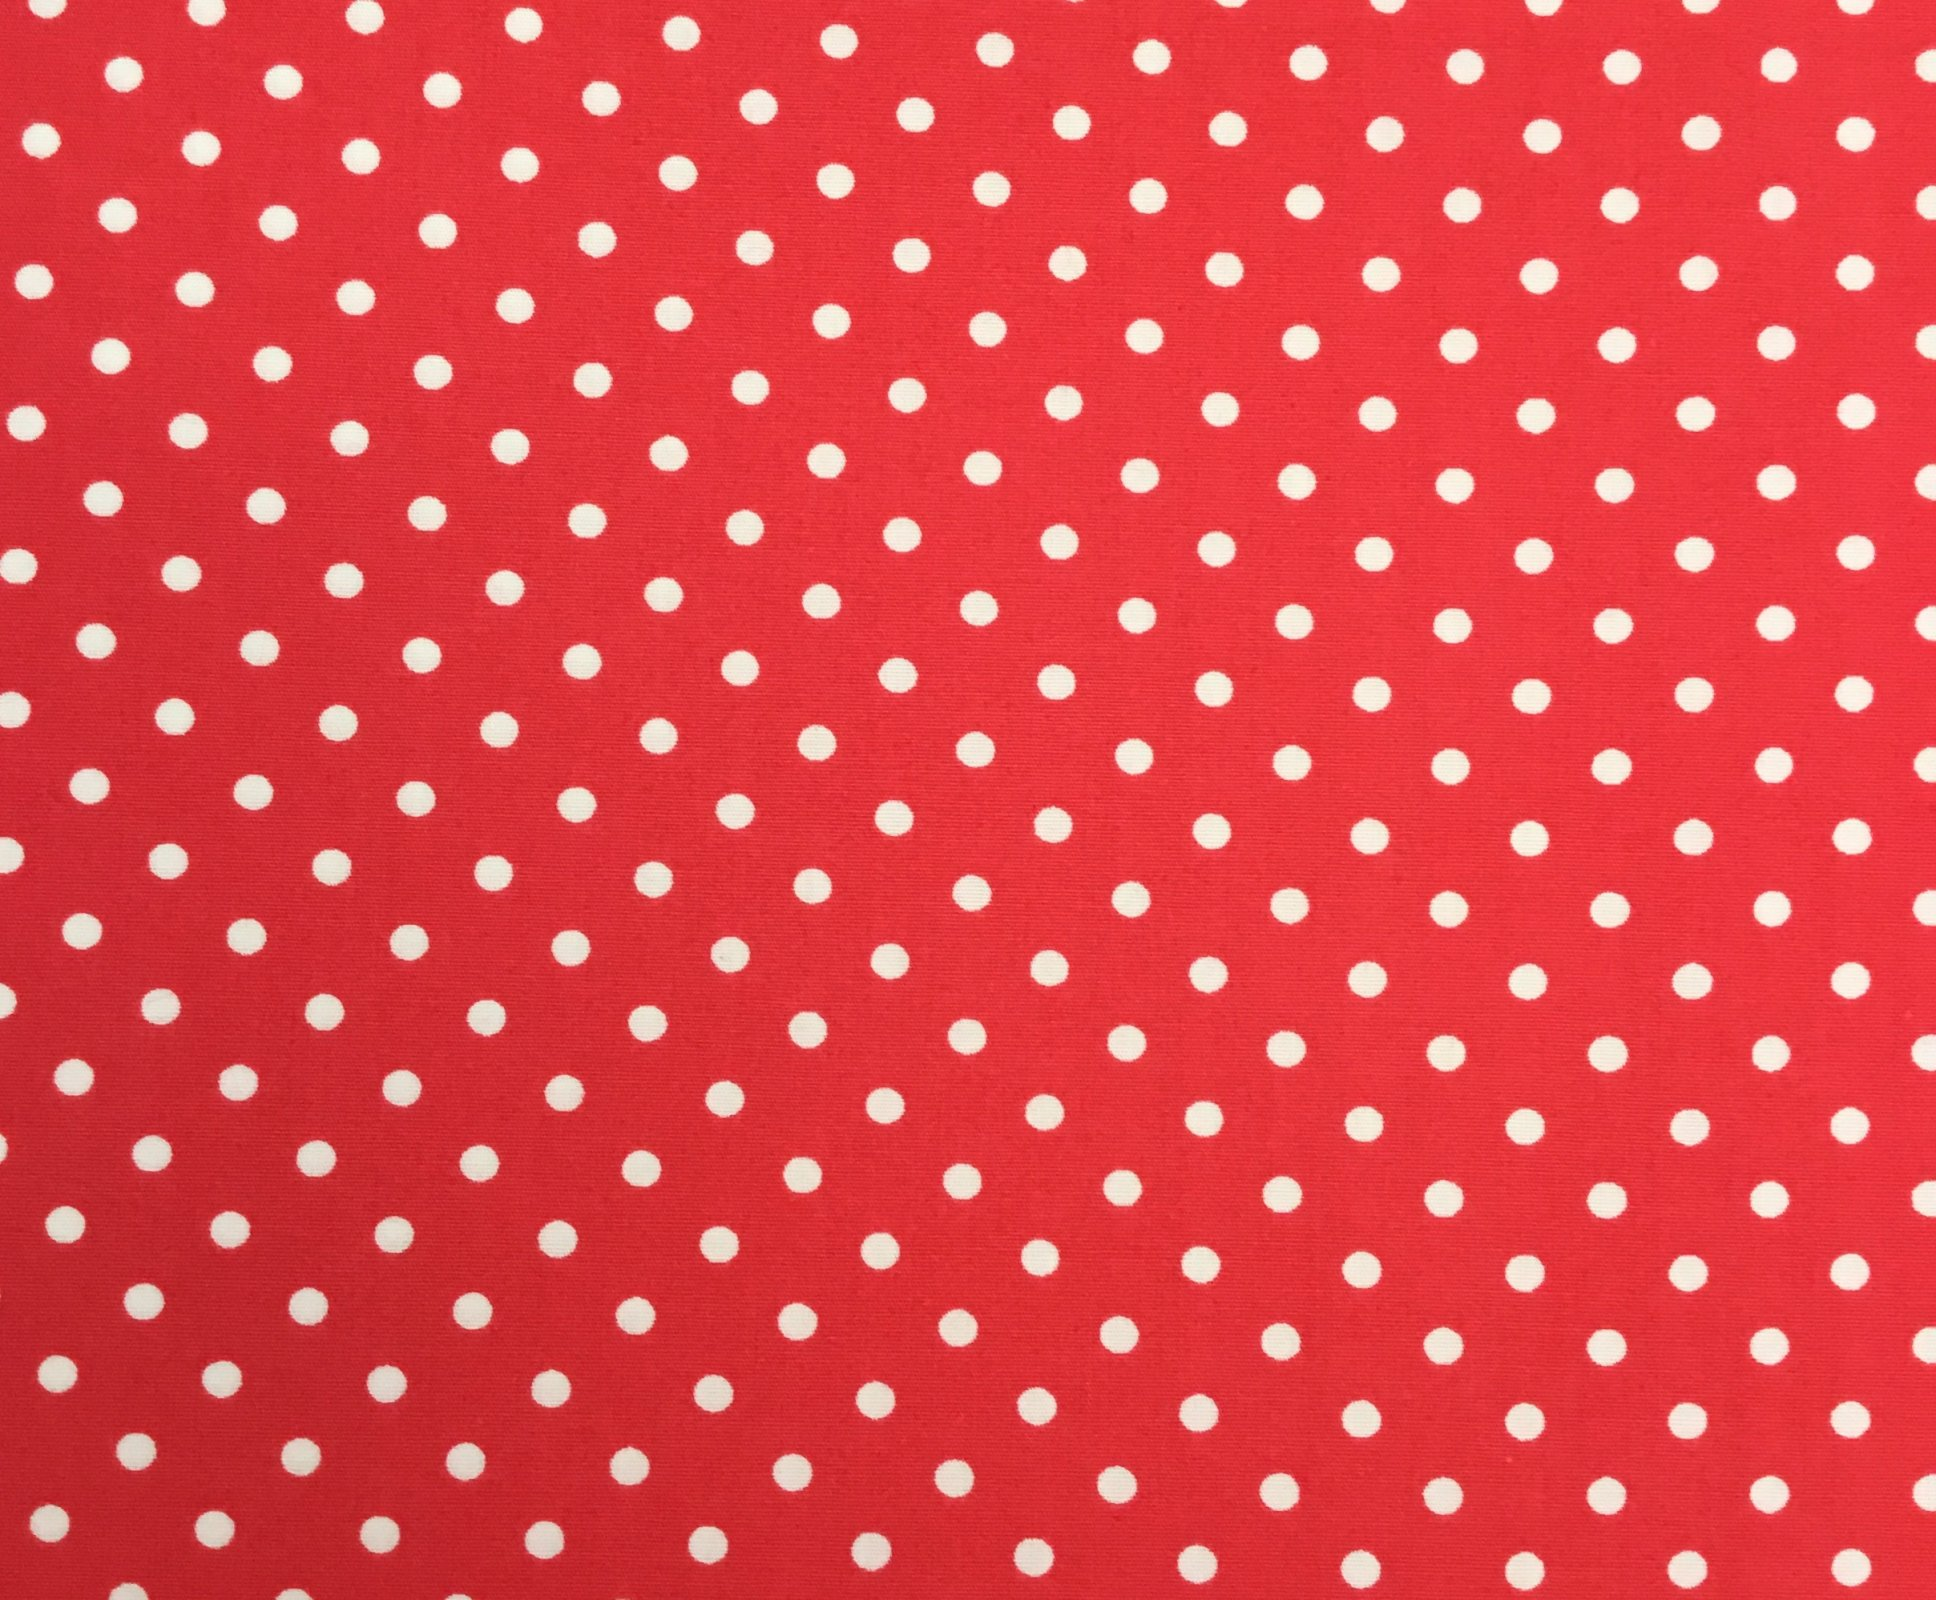 Adaman Coast - Red Pepper - White Dots on Red